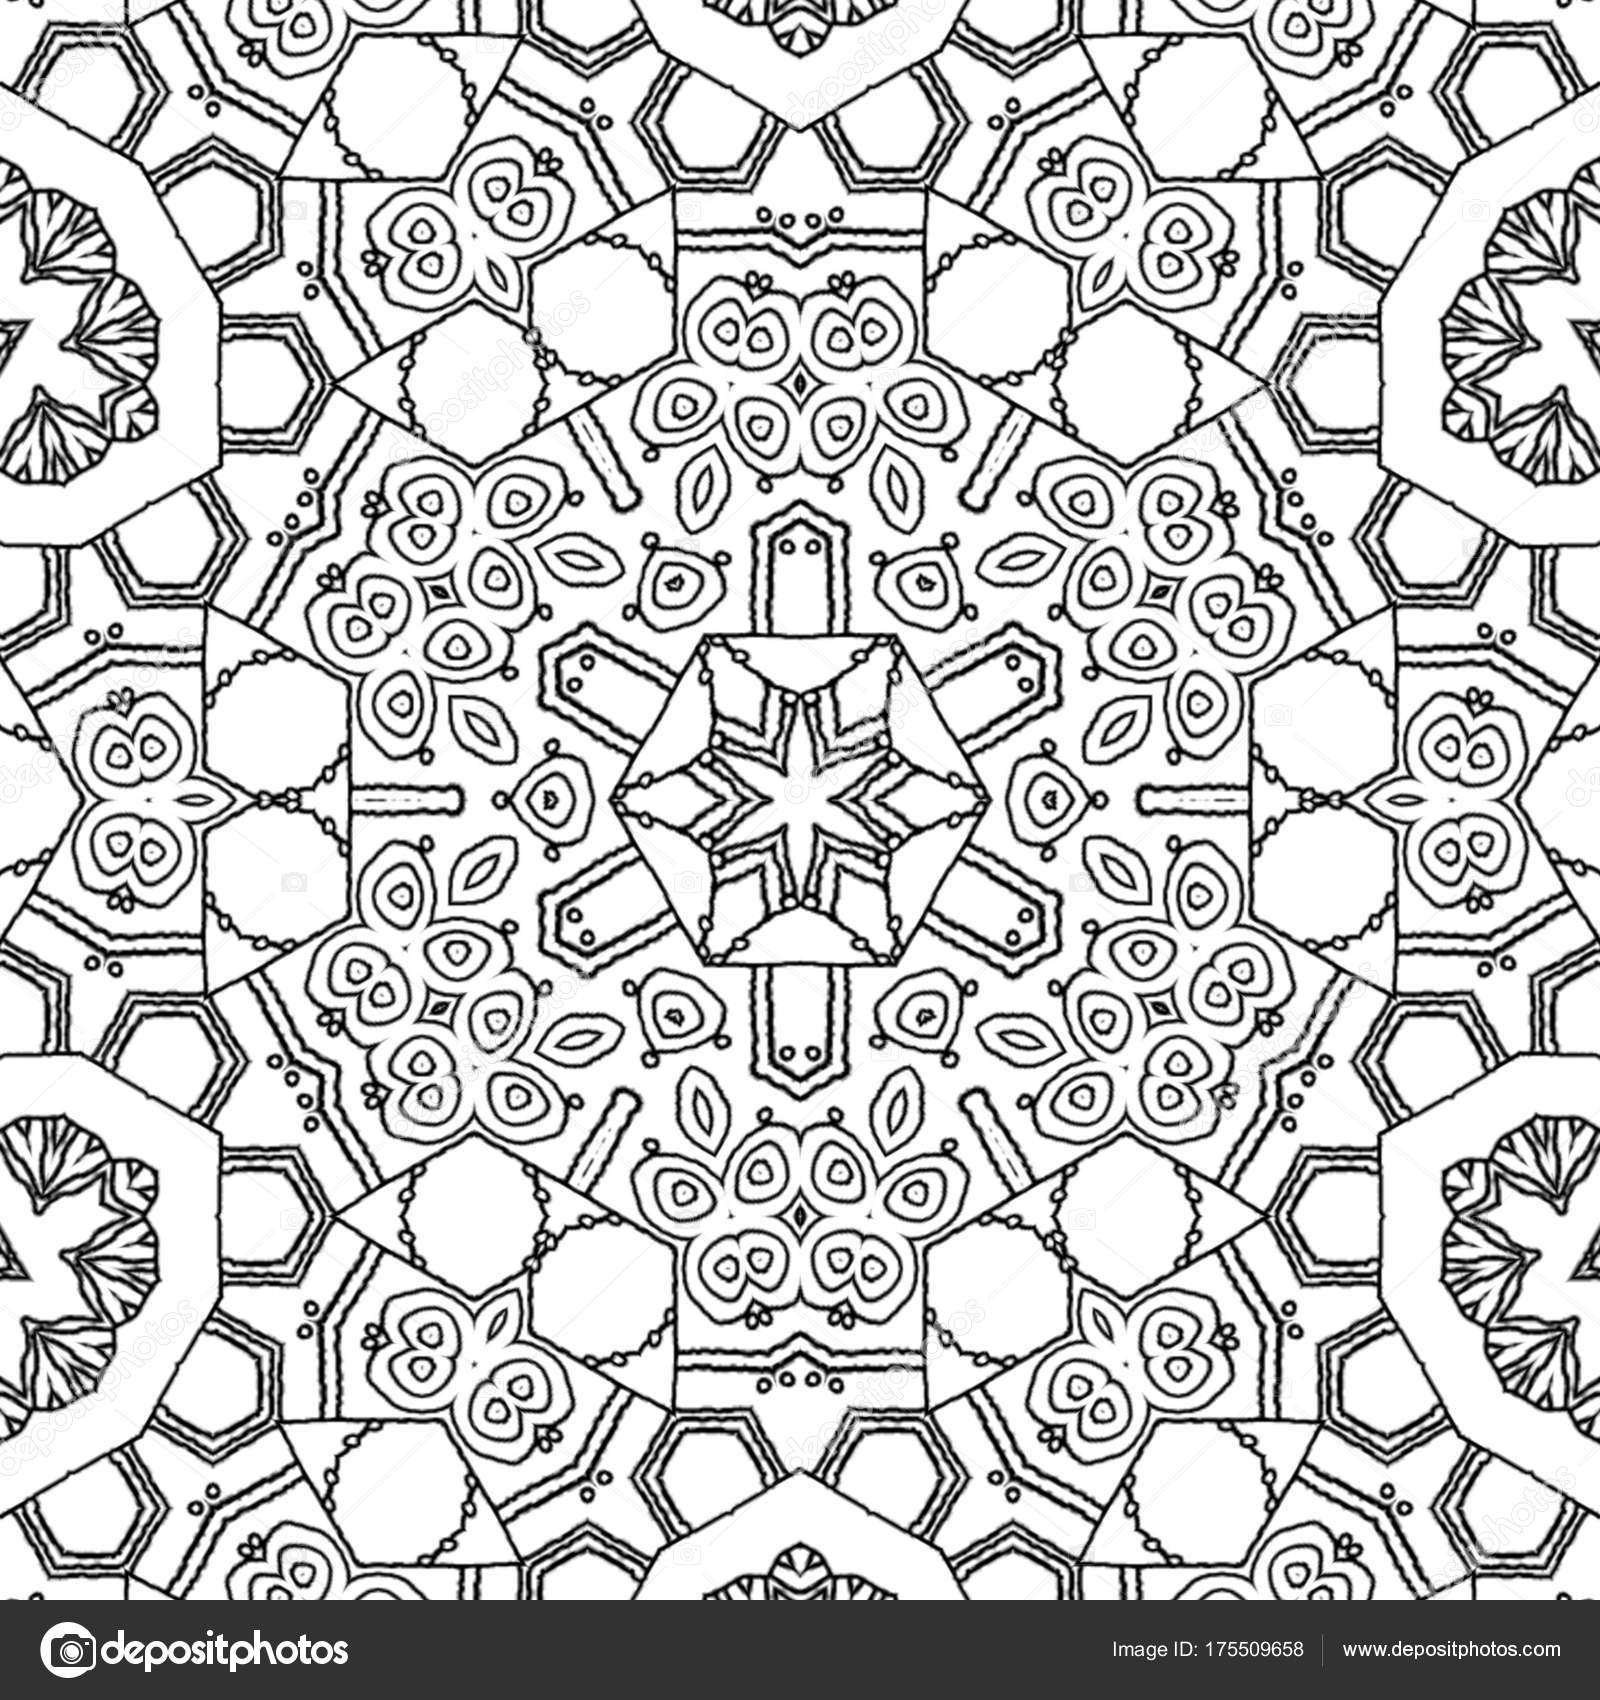 Abstract Coloring Page Drawing Monochrome Mandala Ornament Centered